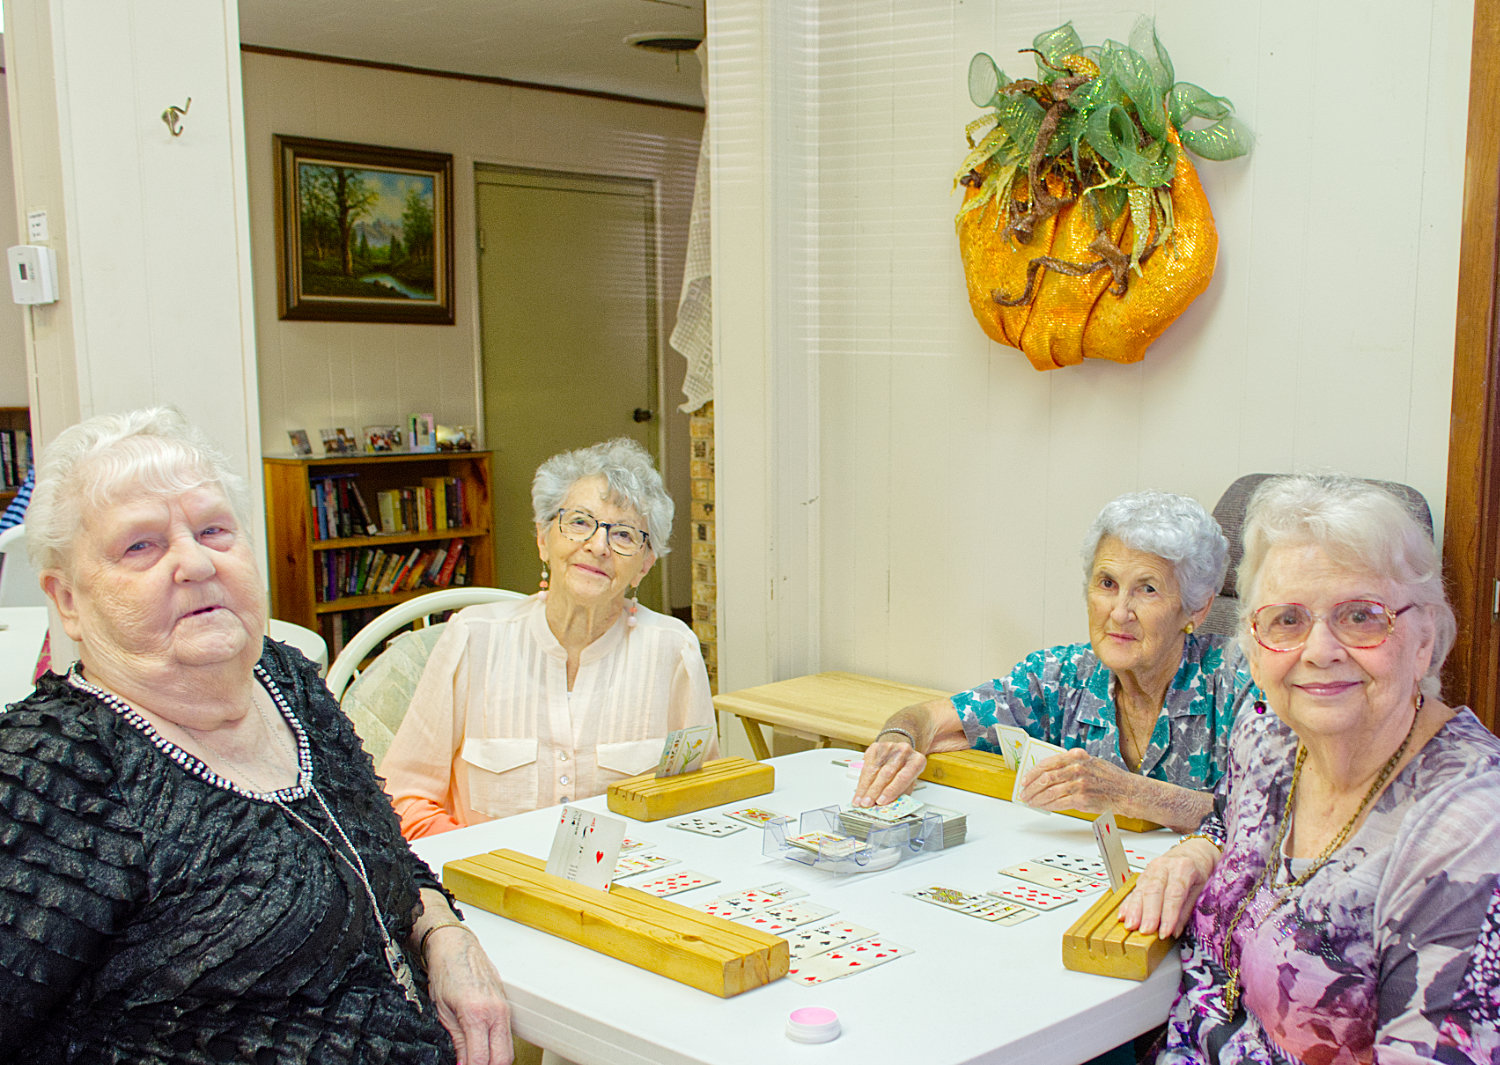 Ella Mae Clifton, (from left) Jeanette Treadaway, Sonja Vaughn and Linda Morgan meet at the Mineola Senior Citizen Center almost daily to play cards together. The center offers them fellowship and a place to connect.